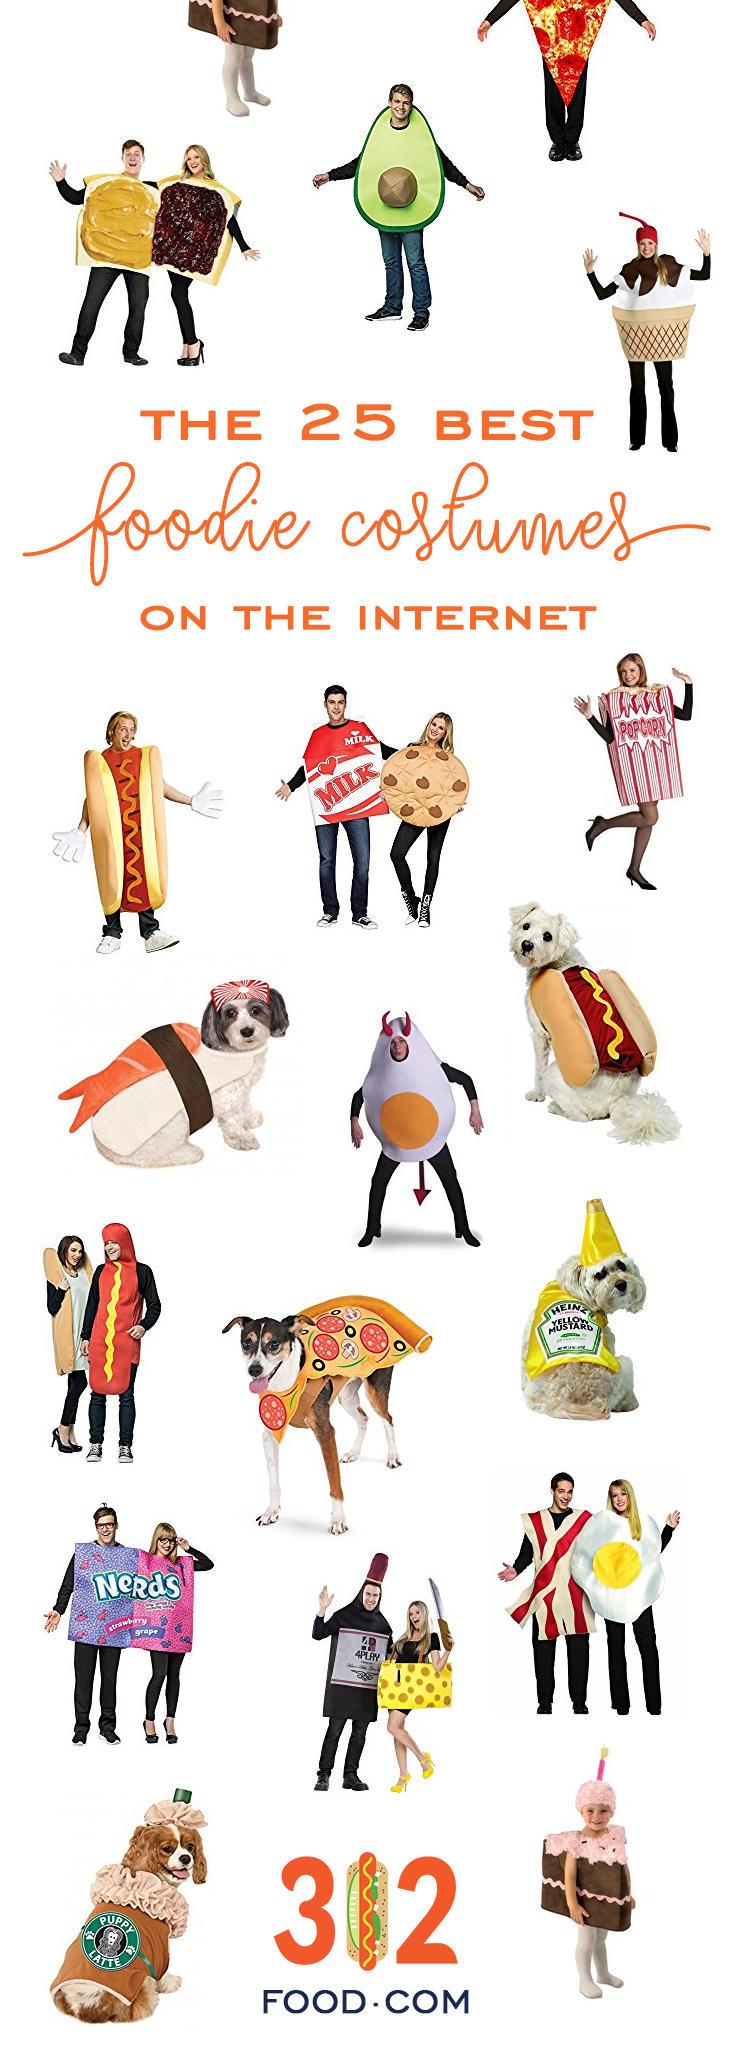 Halloween ideas: the 25 best foodie costumes on the internet.